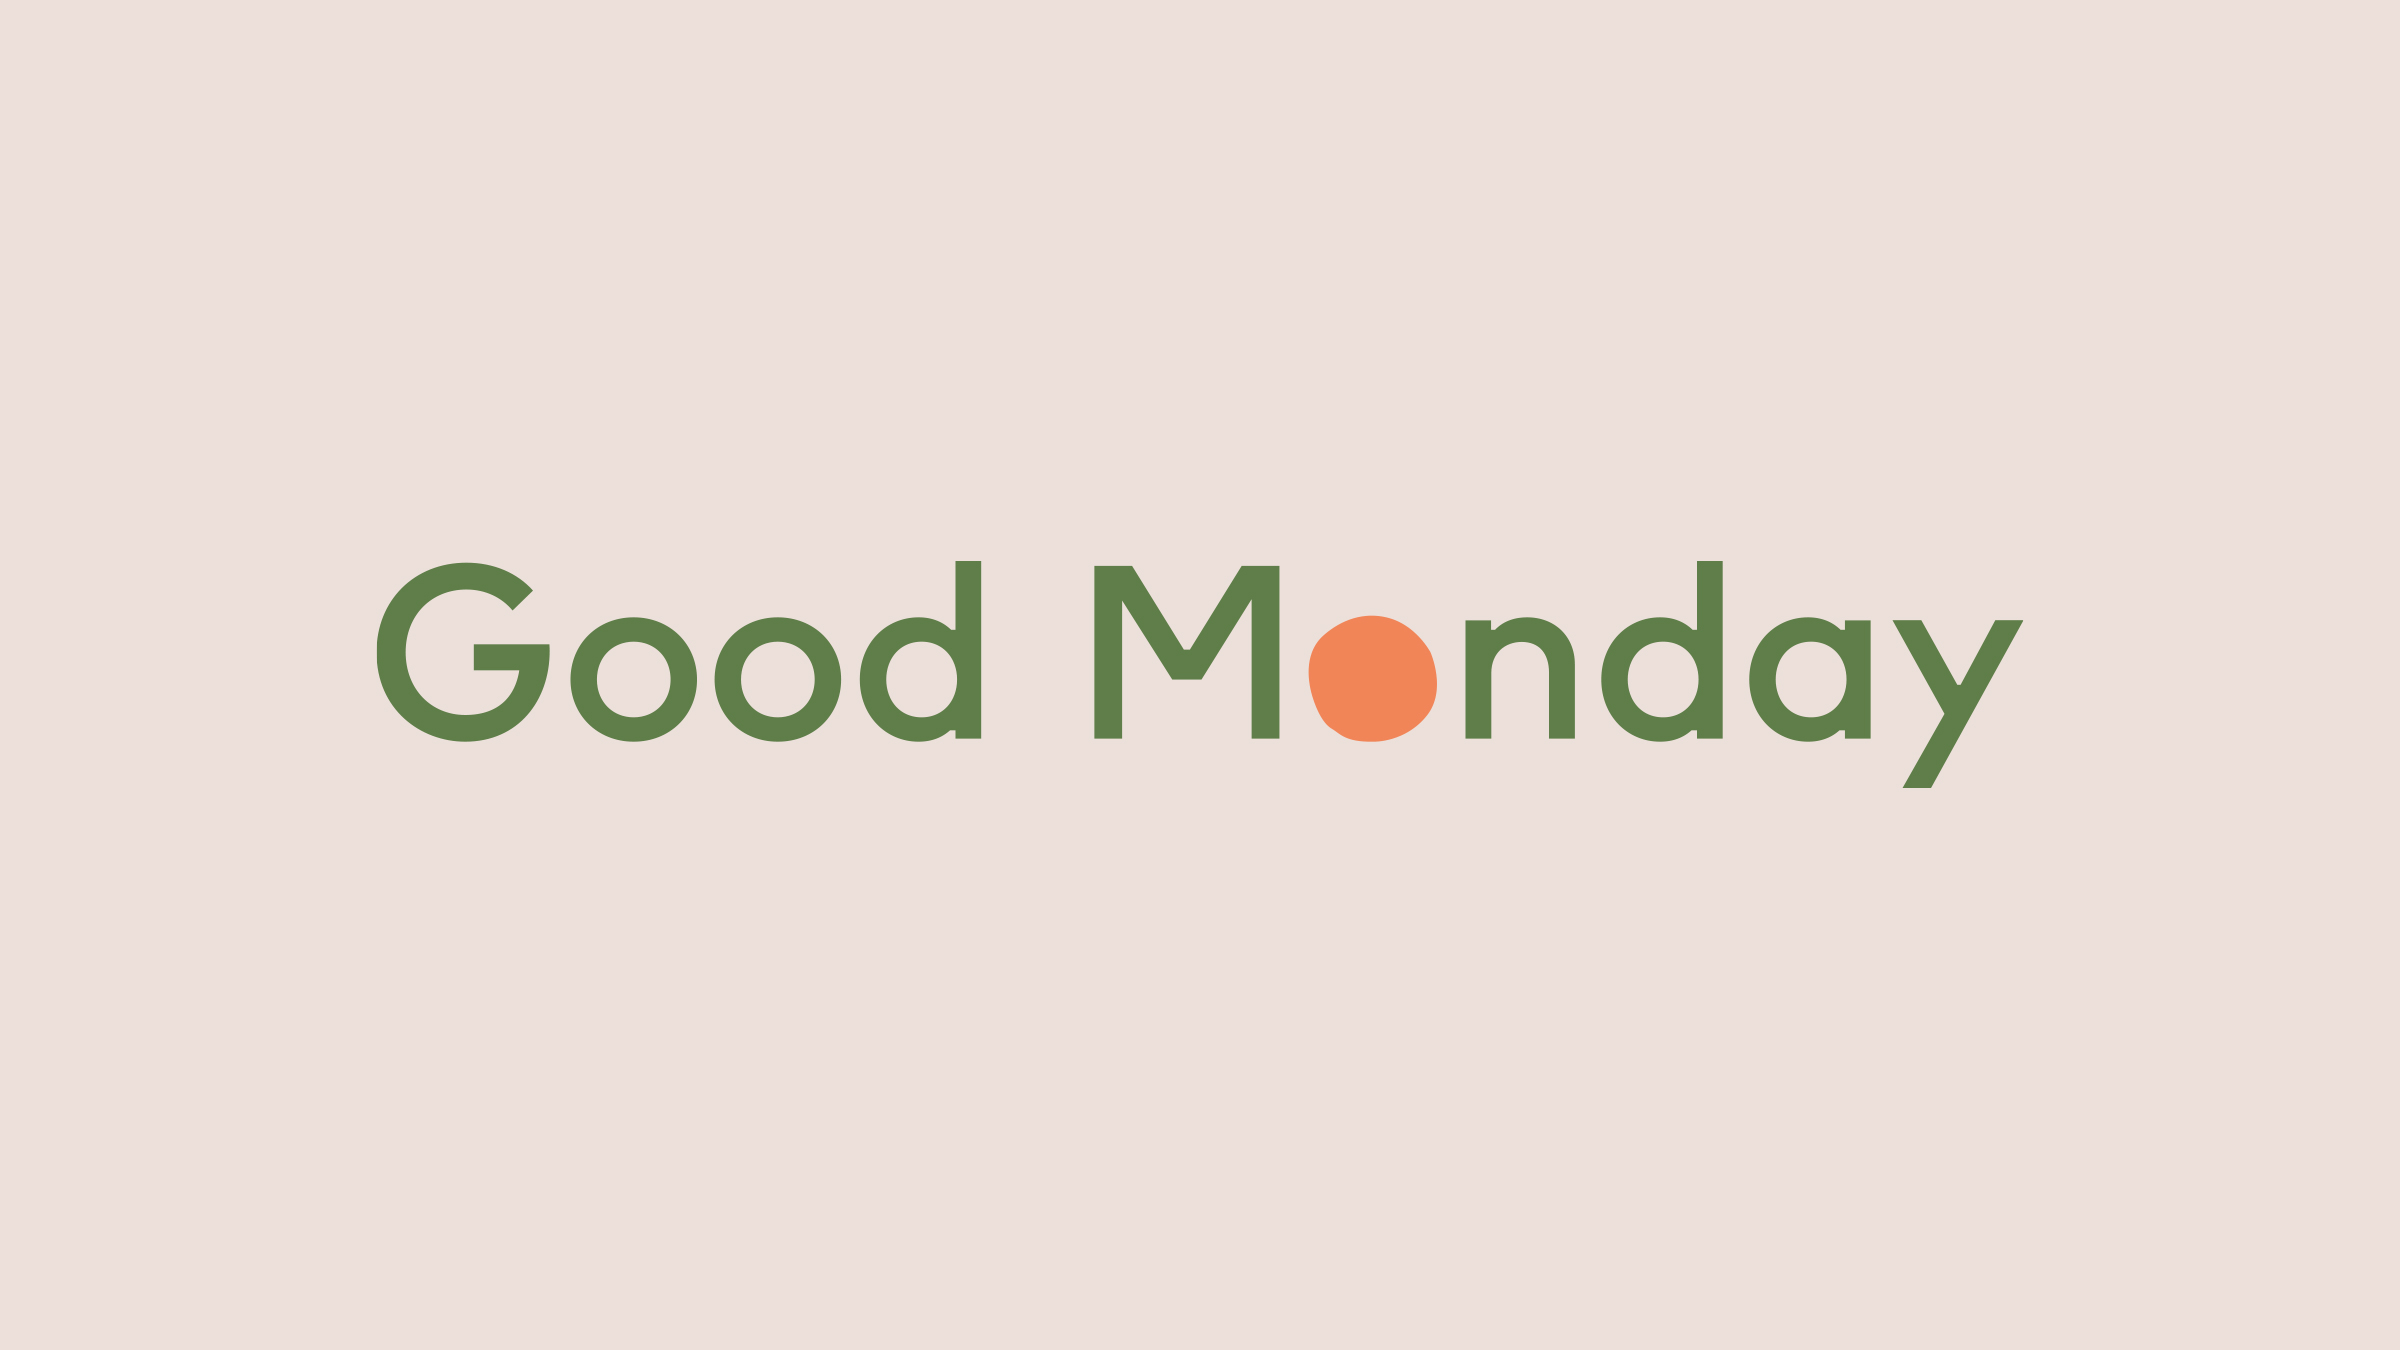 Good Monday brand logo green and orange on cream